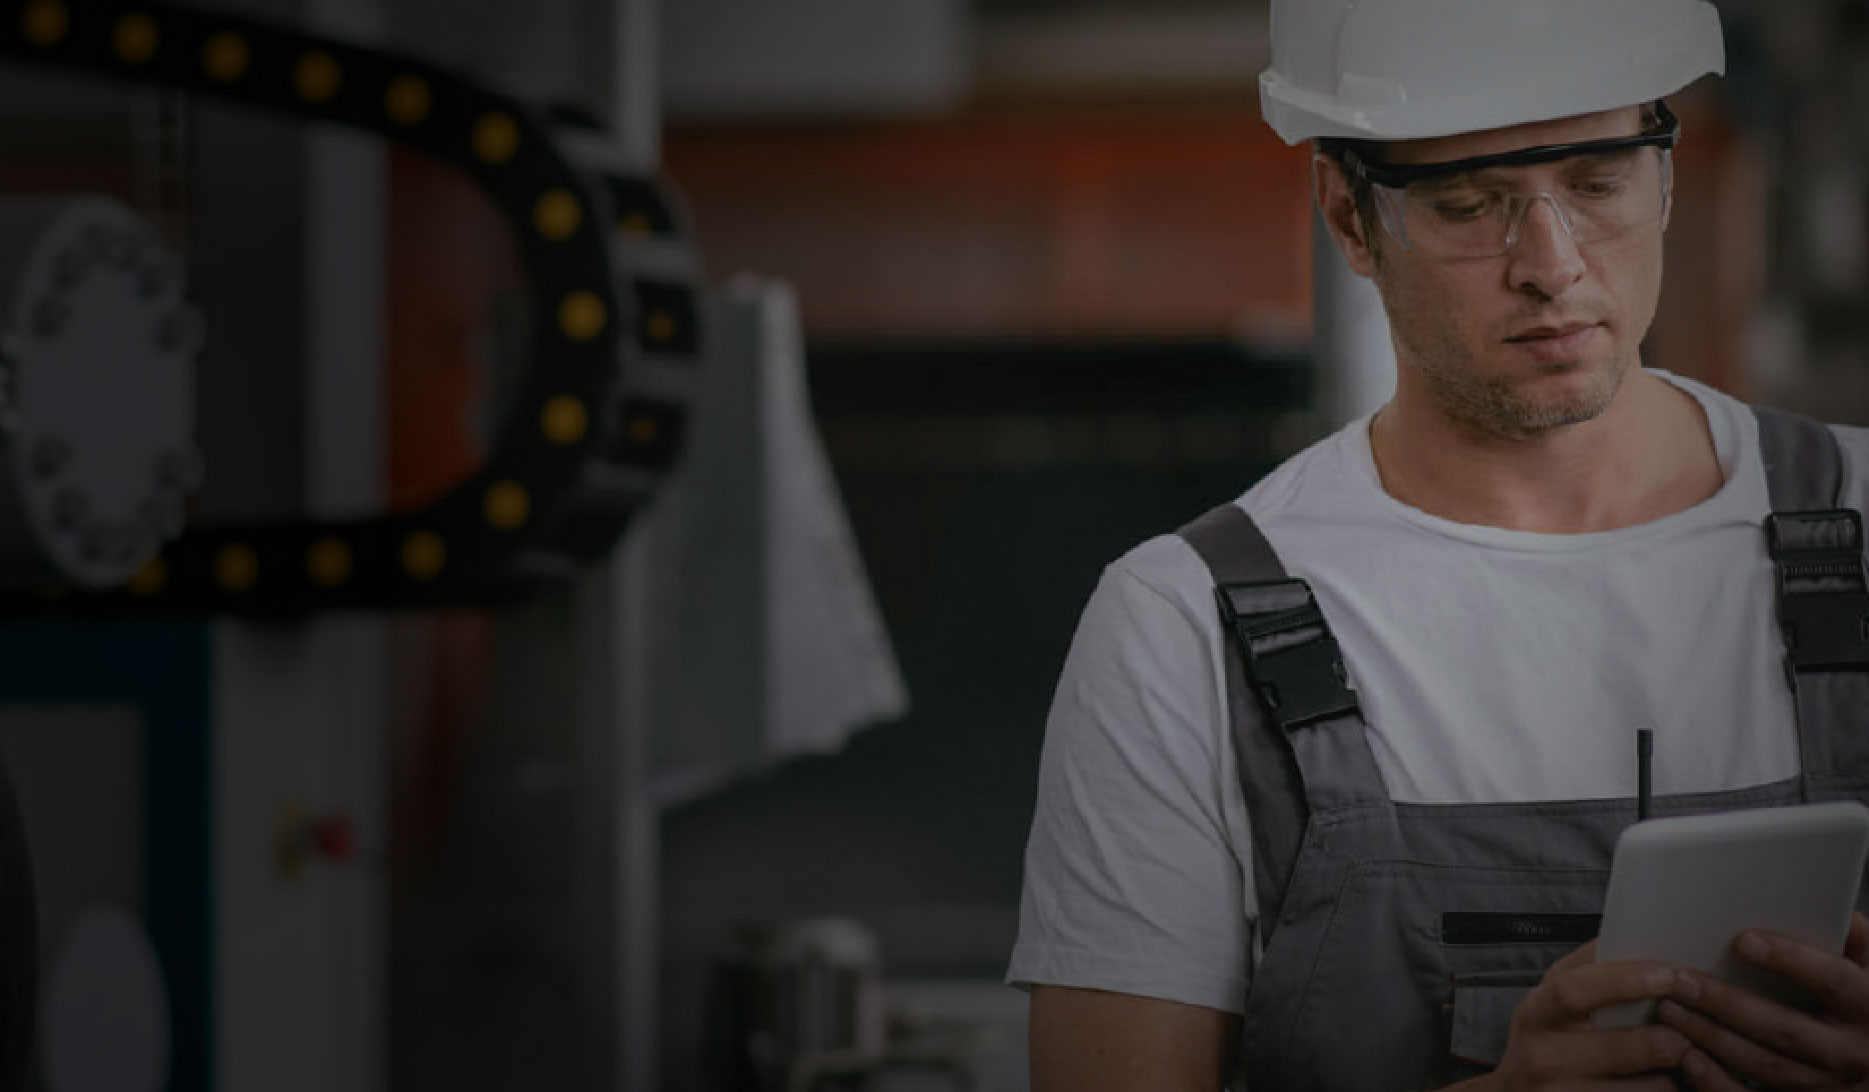 Image shows a frontline worker wearing safety glasses and a grey hard hat, using a mobile tablet within a warehouse.